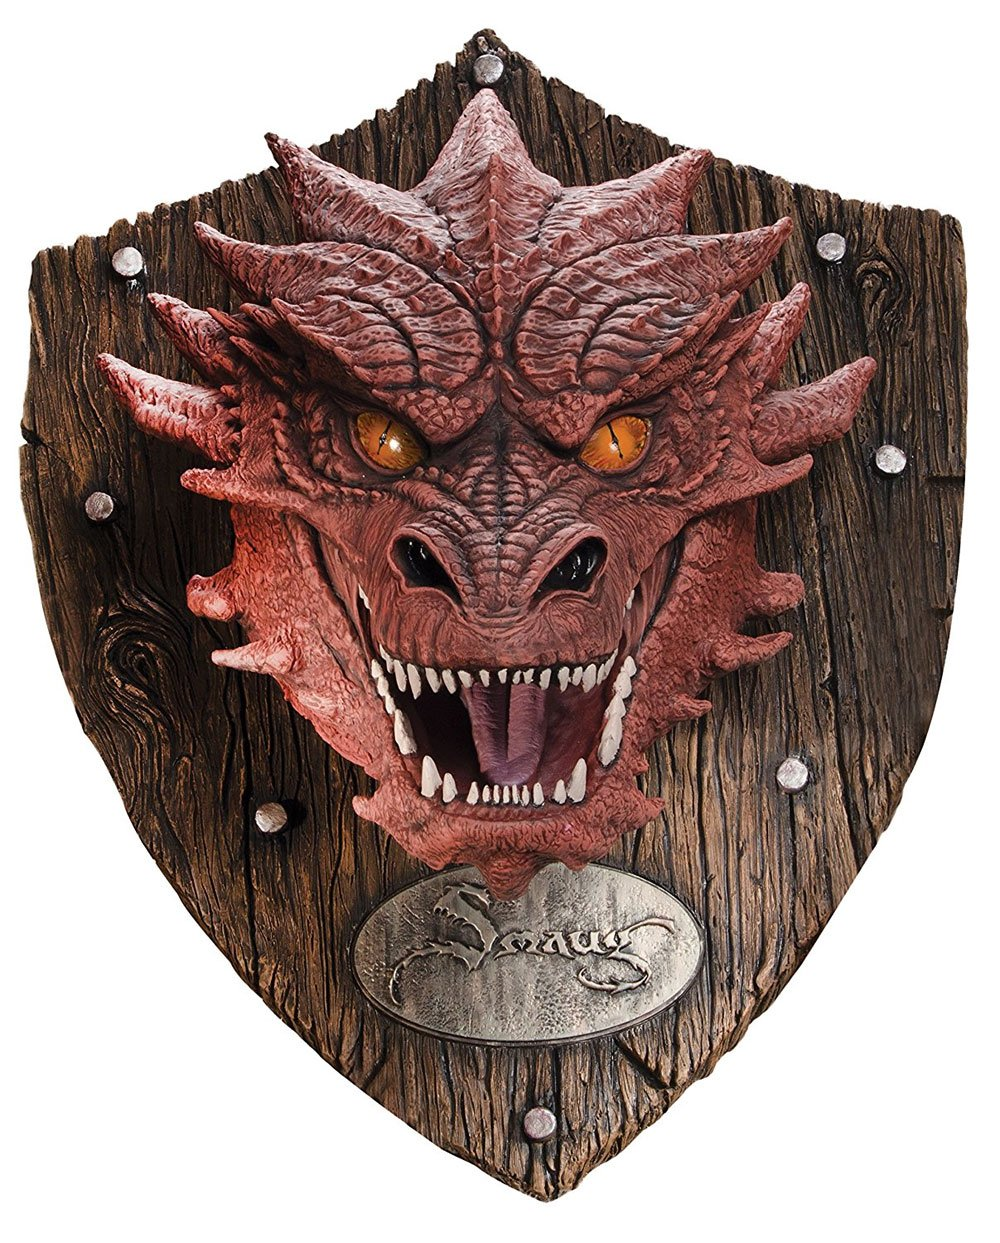 The Hobbit The Battle of the Five Armies Trophy Wall Decor Smaug 76 cm